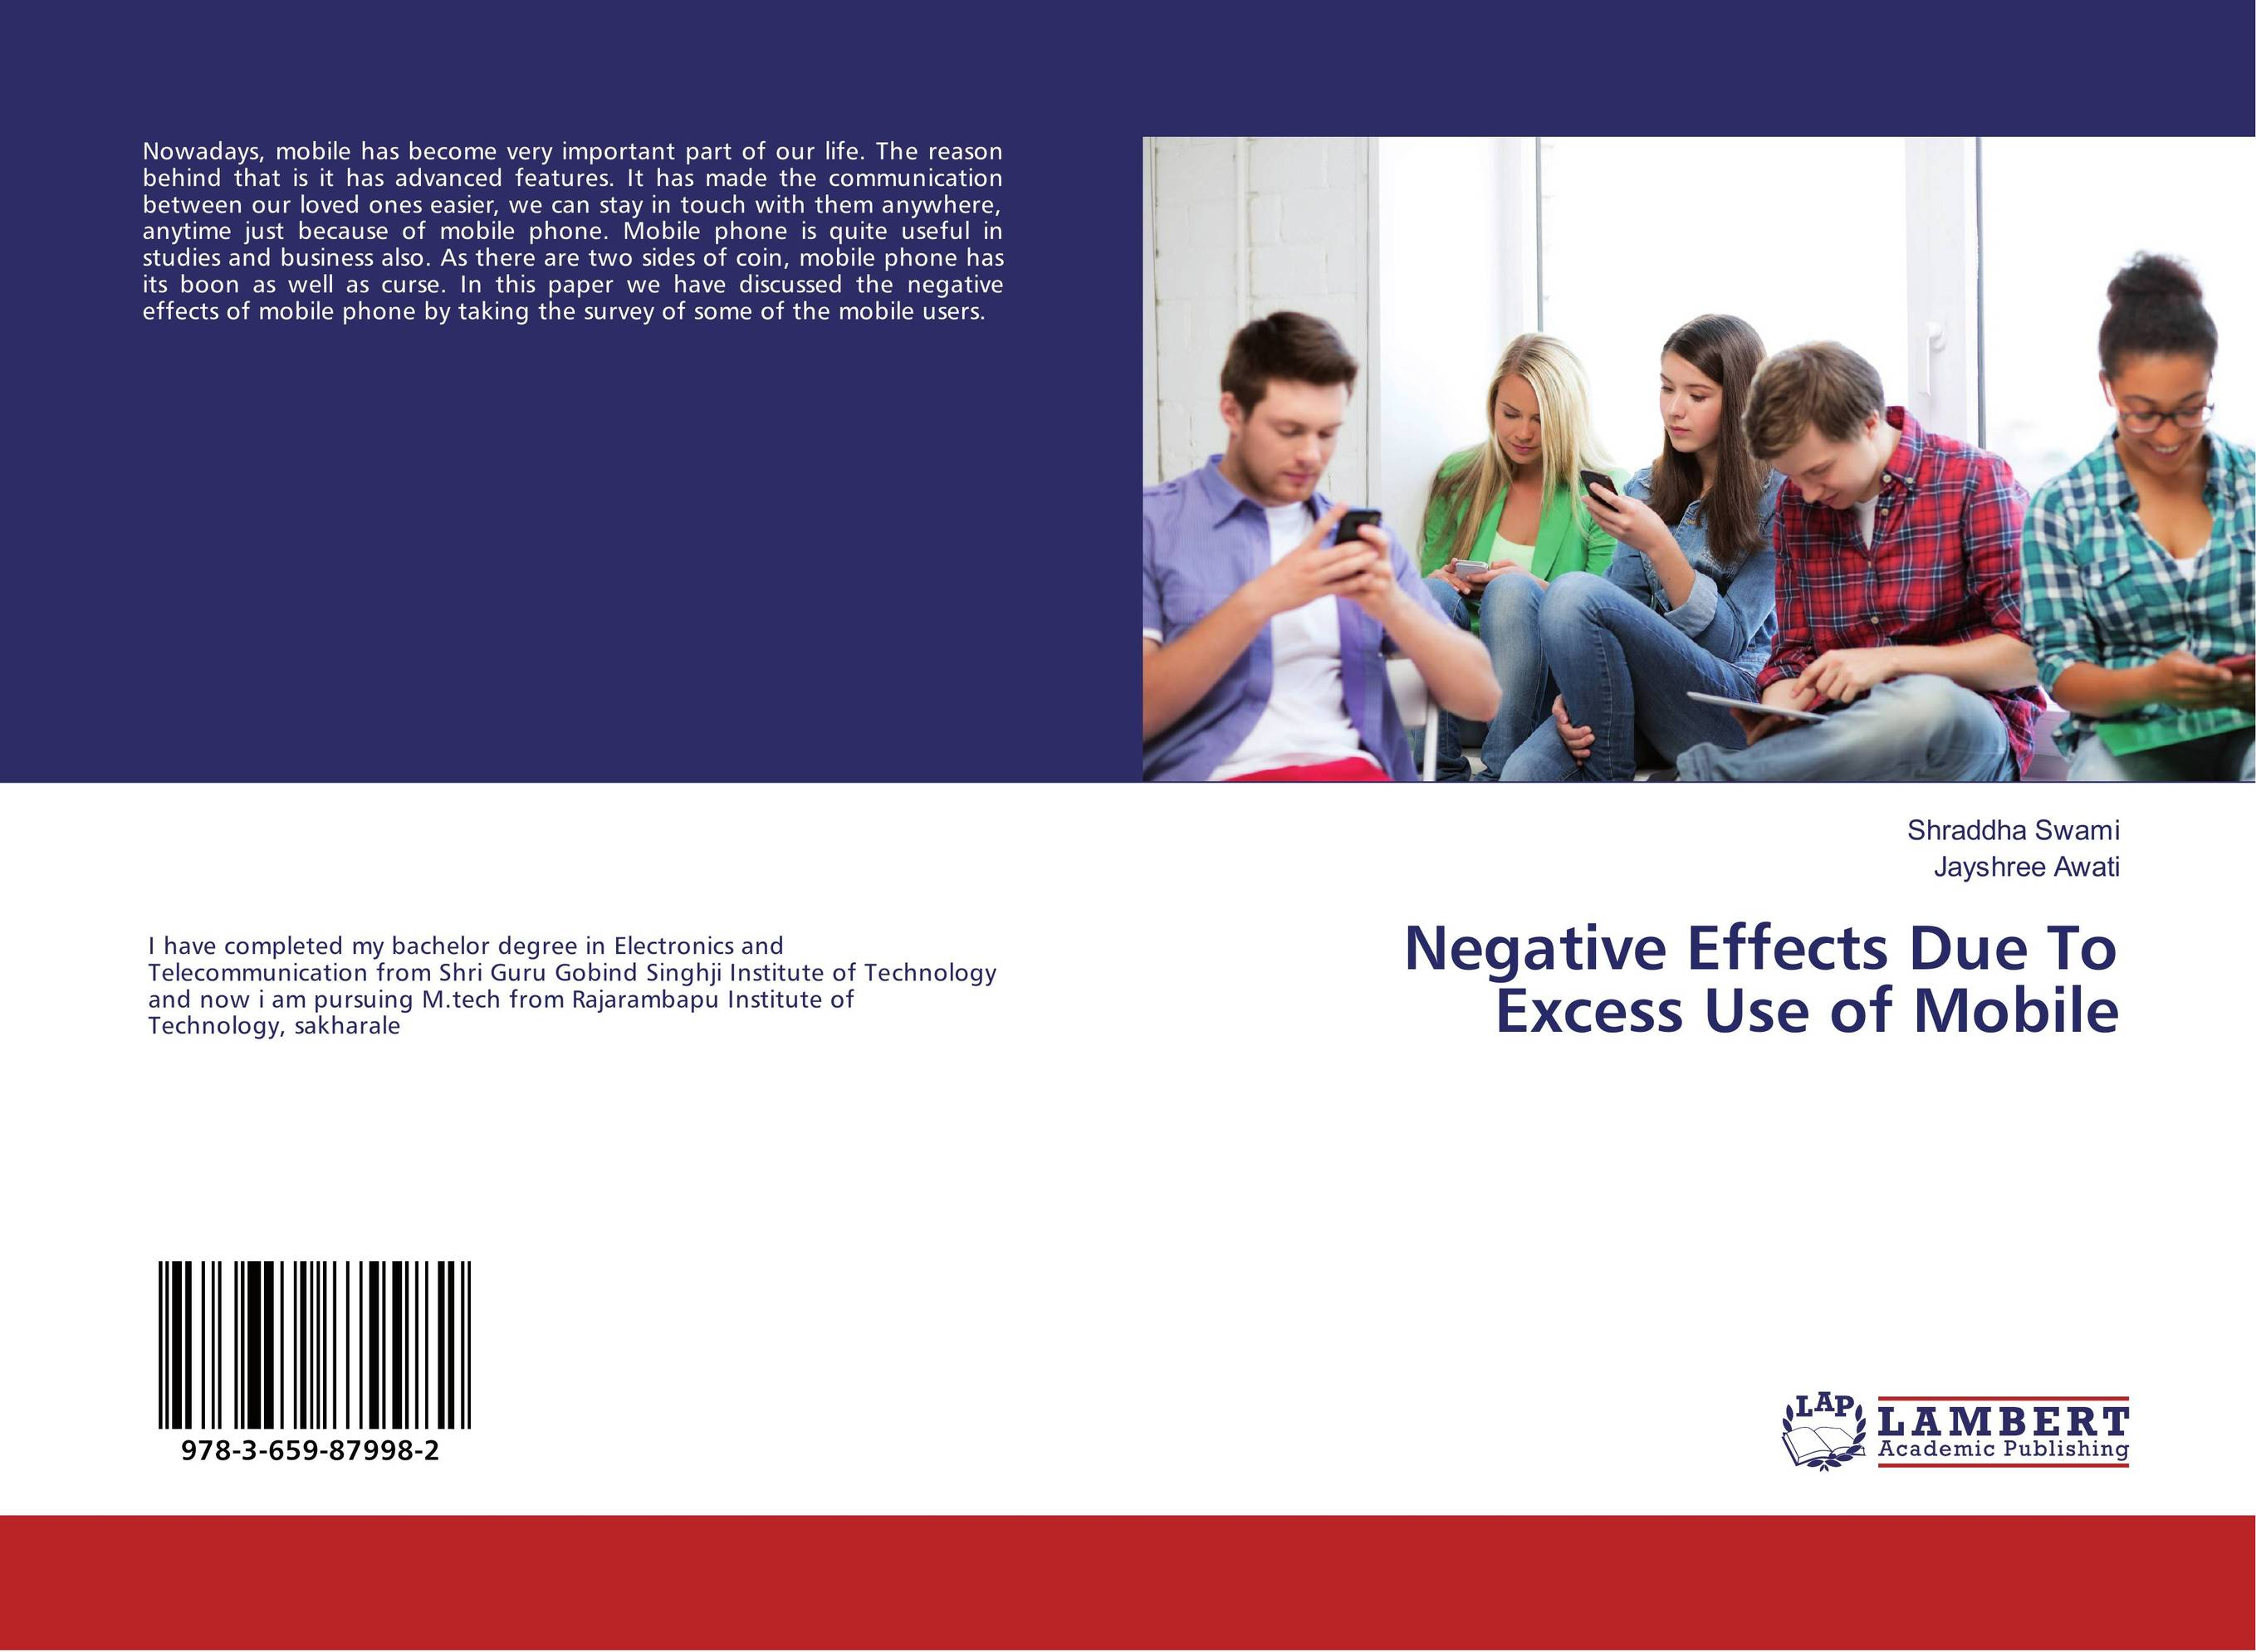 Negative Effects Due To Excess Use of Mobile